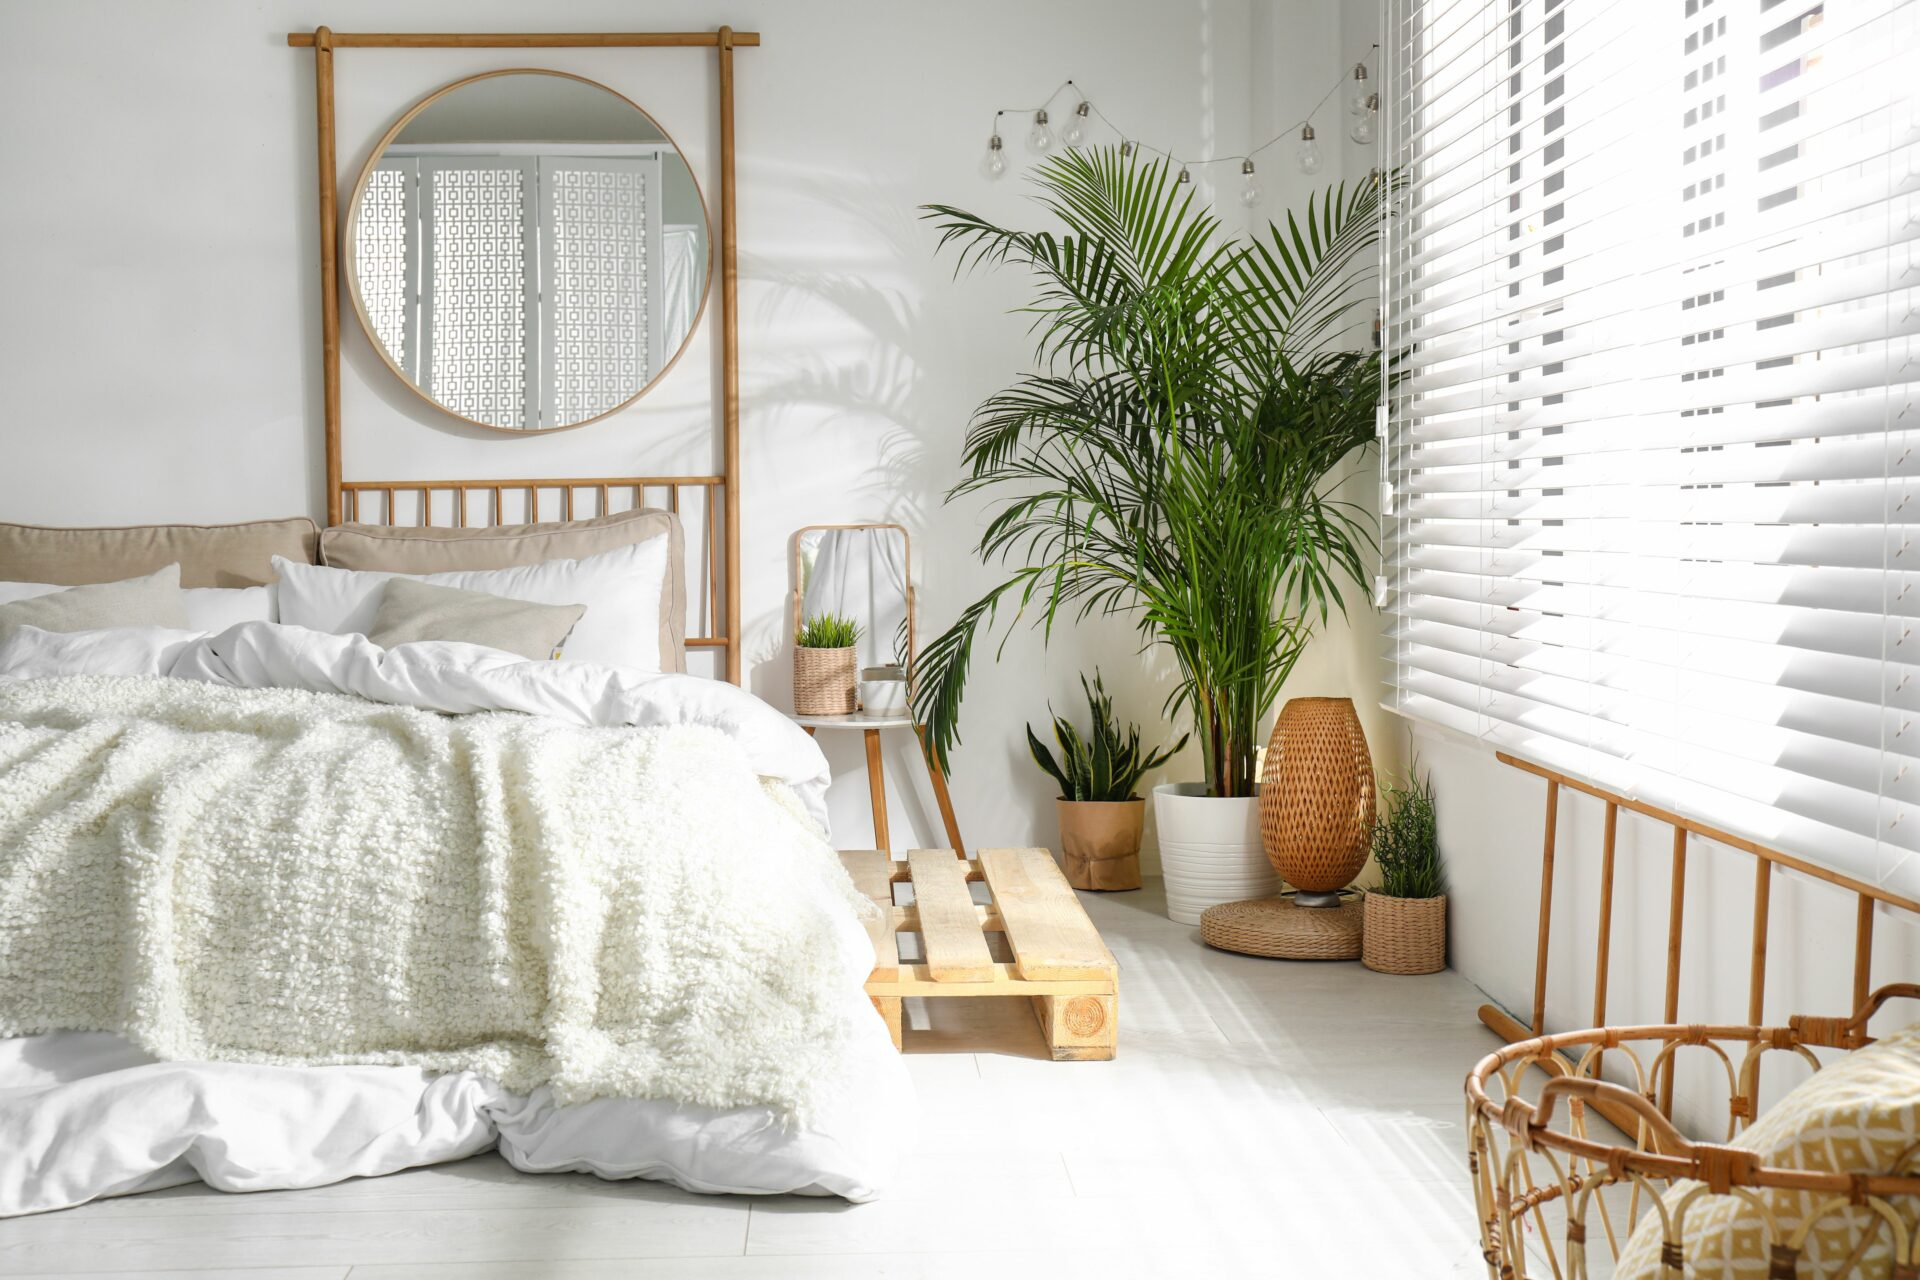 Boho Chic inspiration with blinds and shades